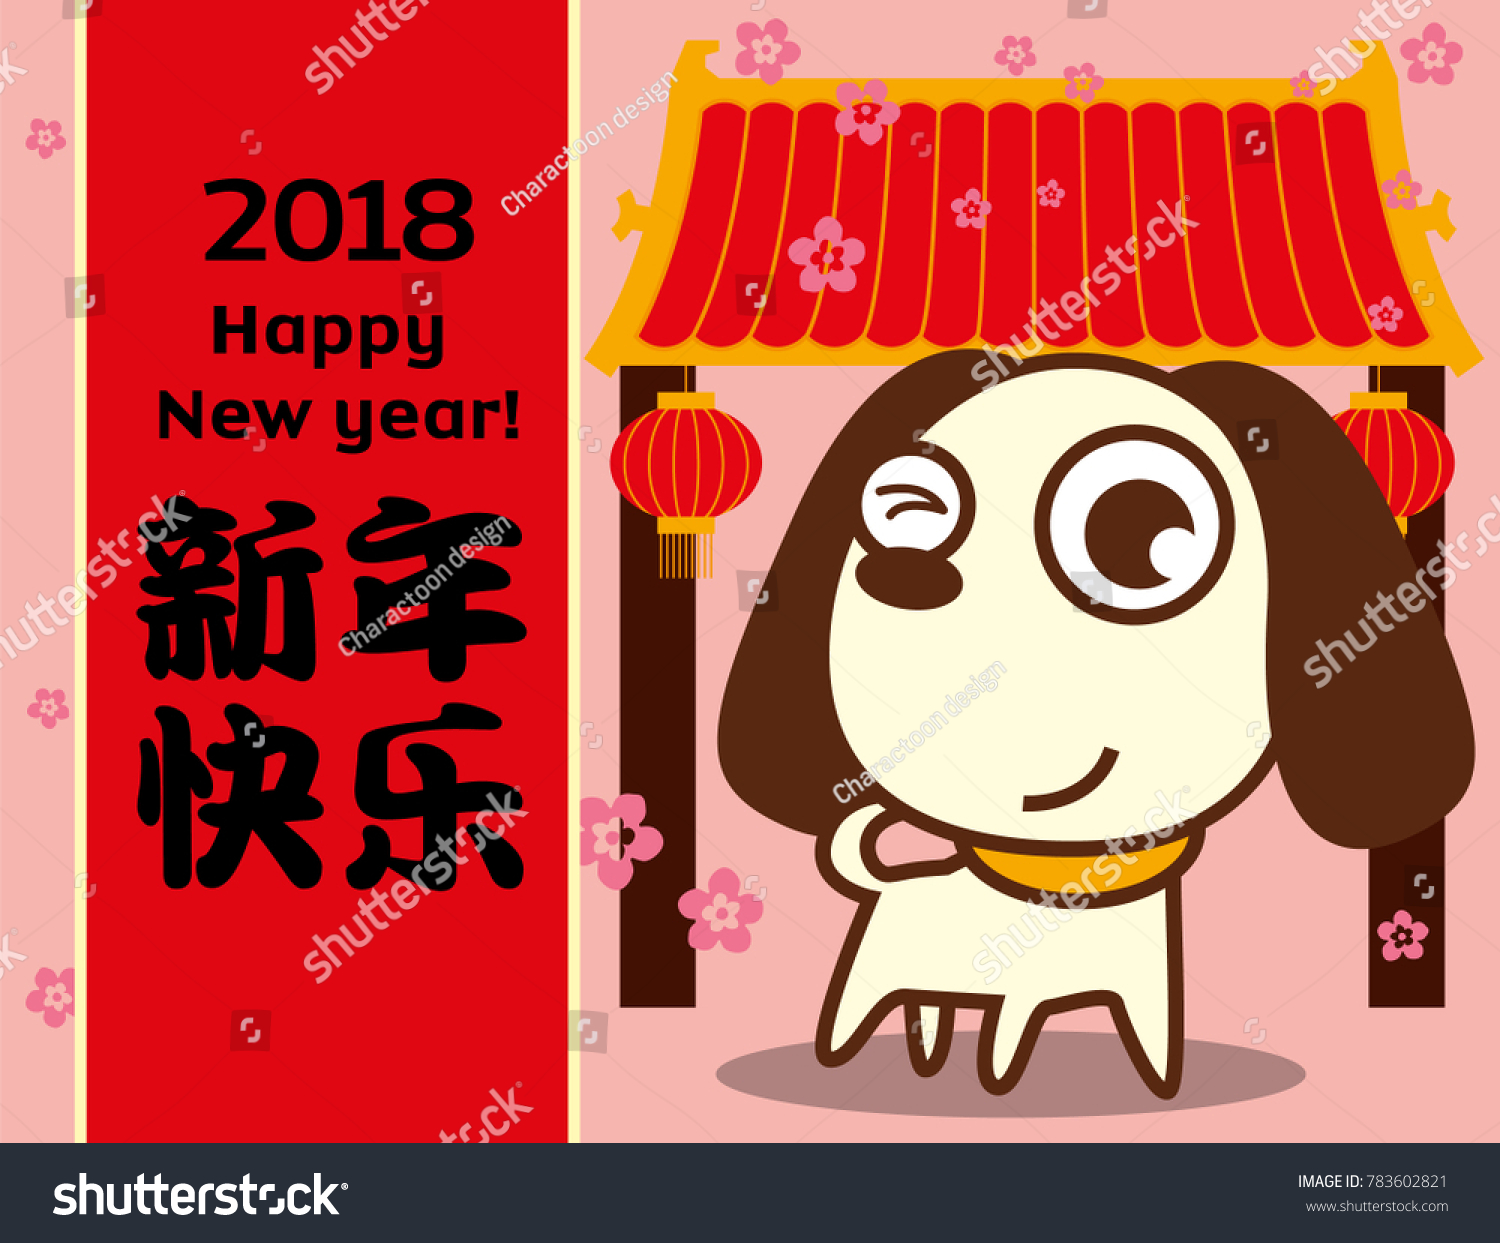 Chinese new year 2018 greeting card stock vector 783602821 chinese new year 2018 greeting card design with cute dog the year of dog kristyandbryce Gallery